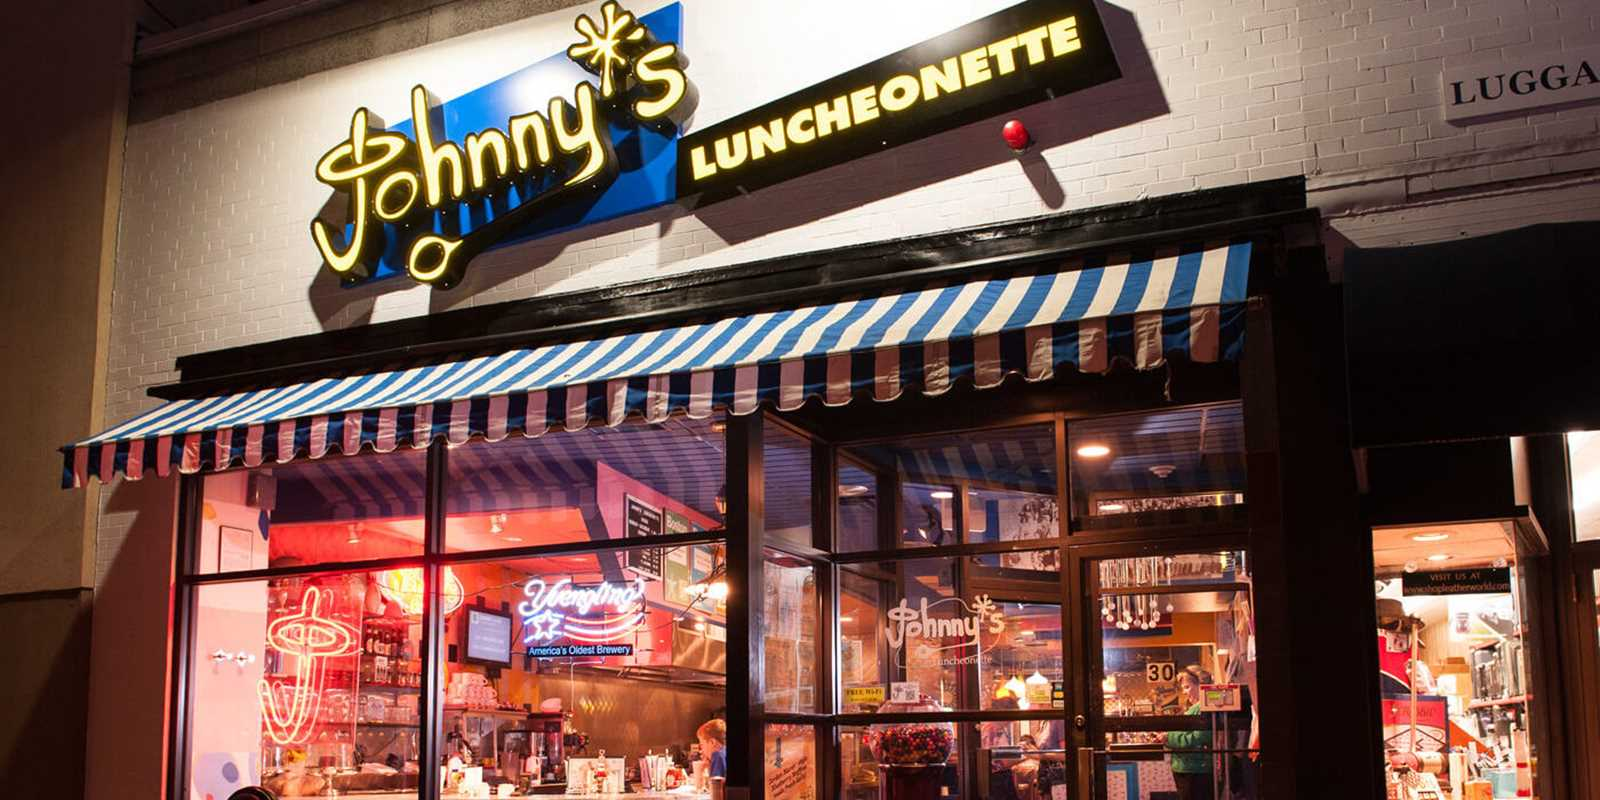 Johnny's Luncheonette front